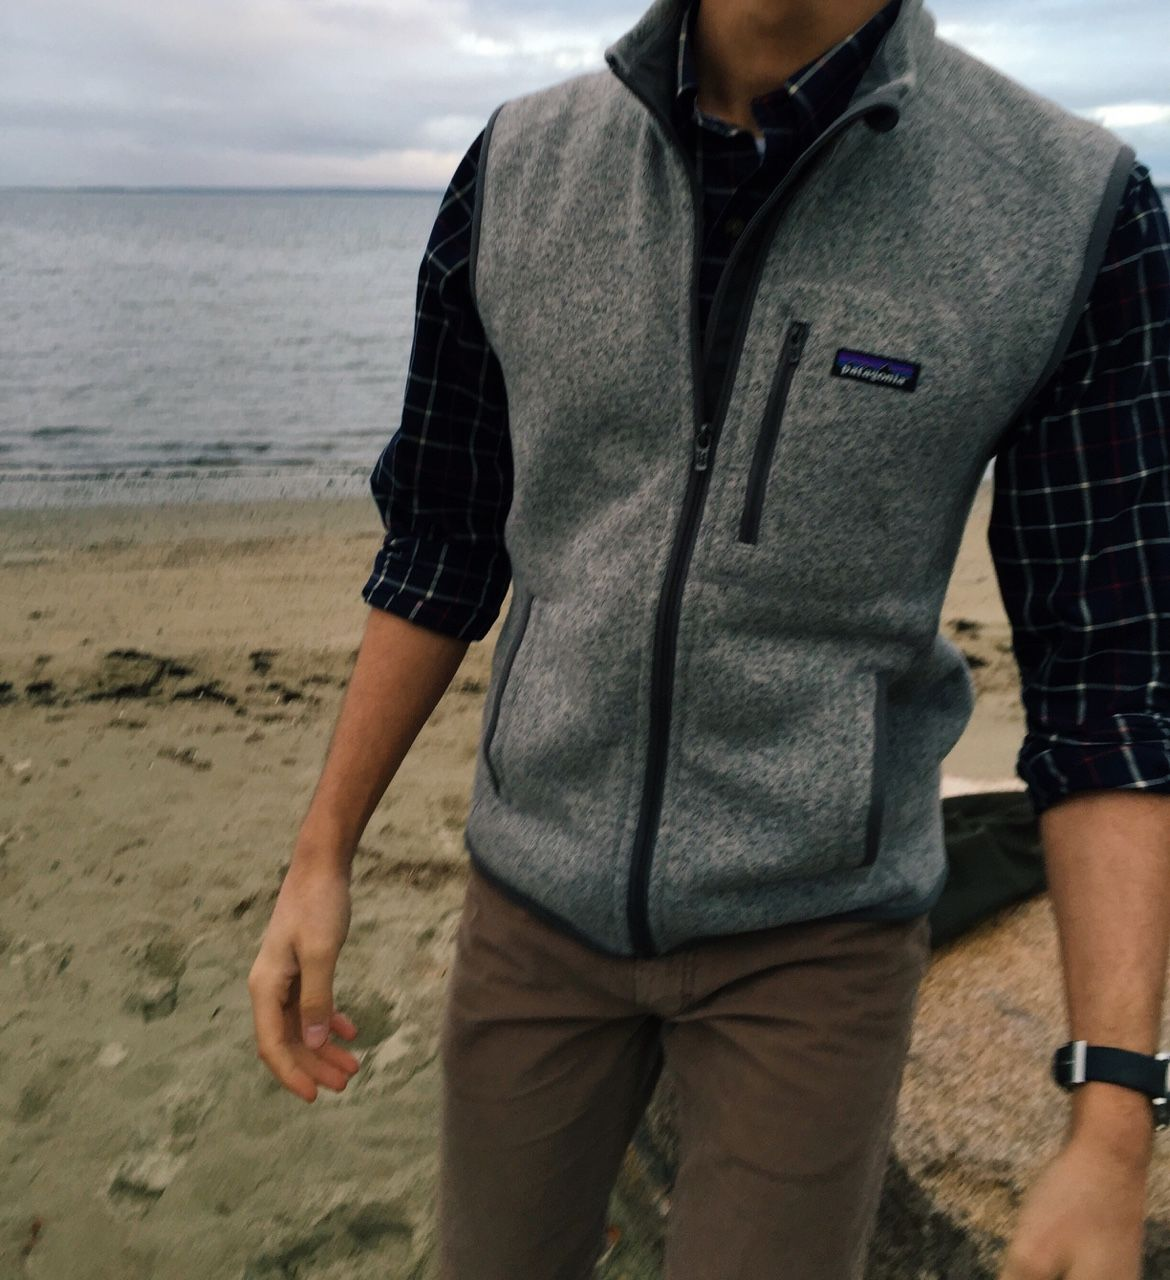 Color of vest and shirt combination | My Style | Pinterest ...